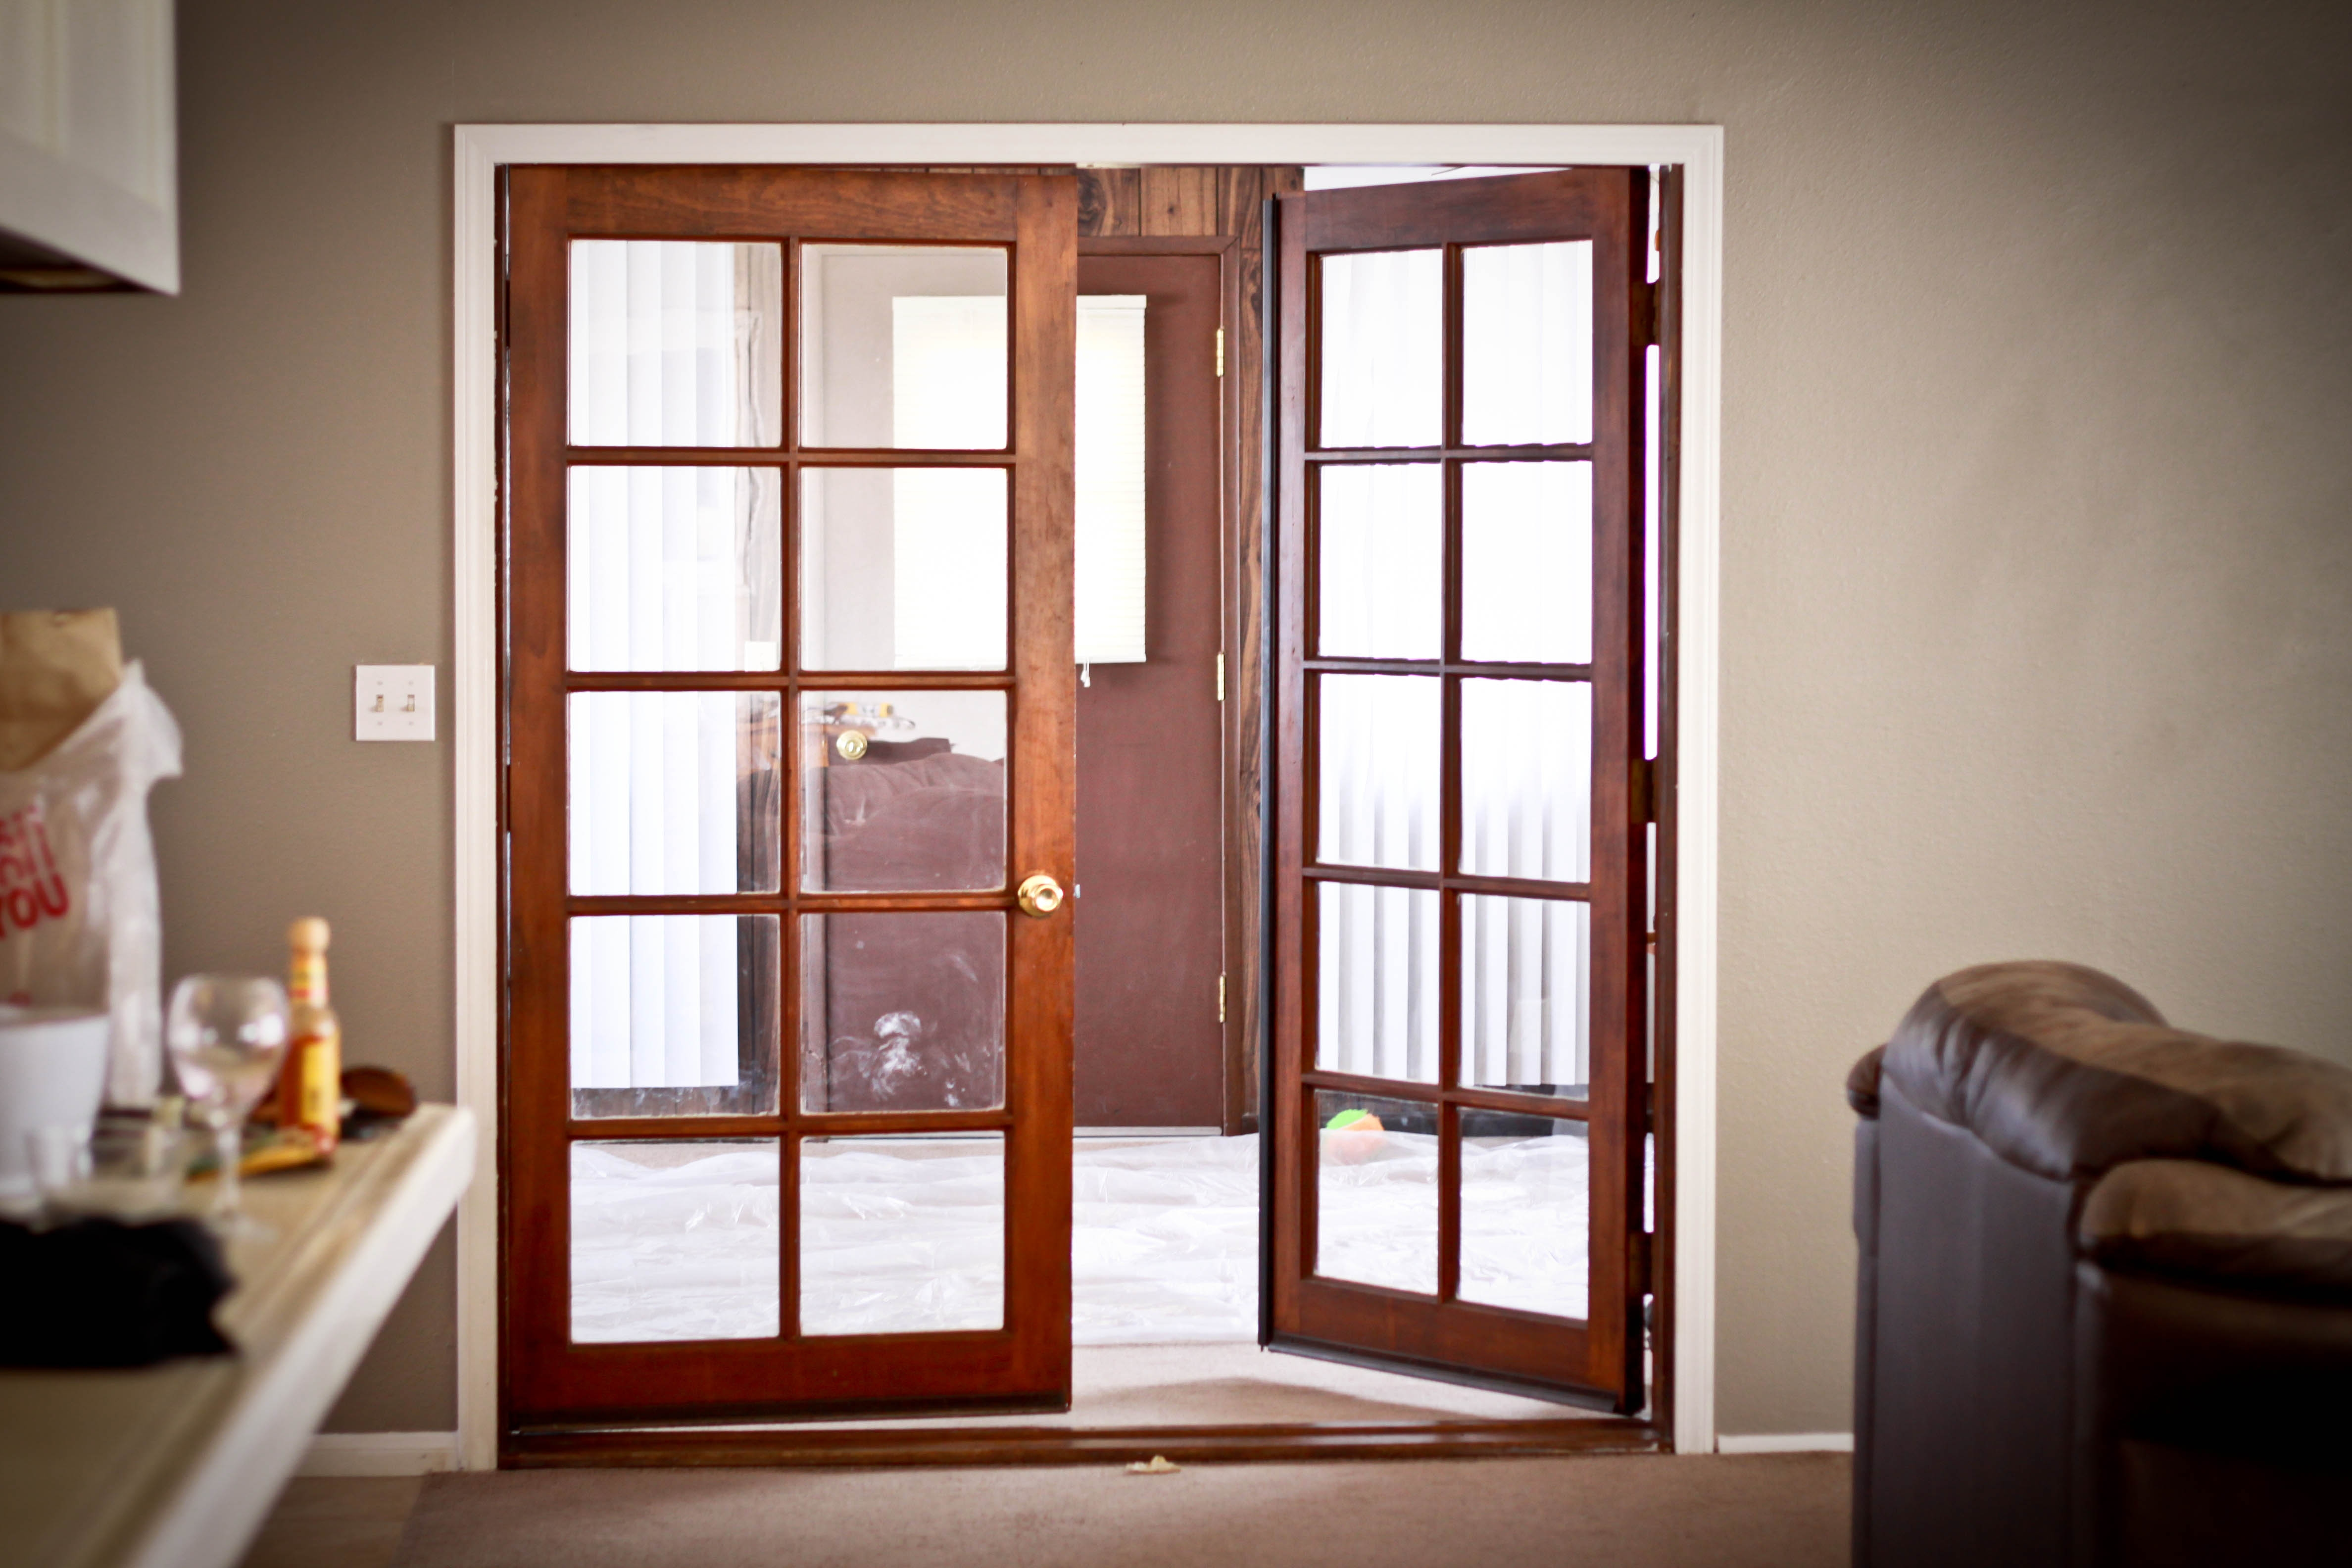 French Doors with Sidelights | French Doors at Home Depot | French Doors Home Depot